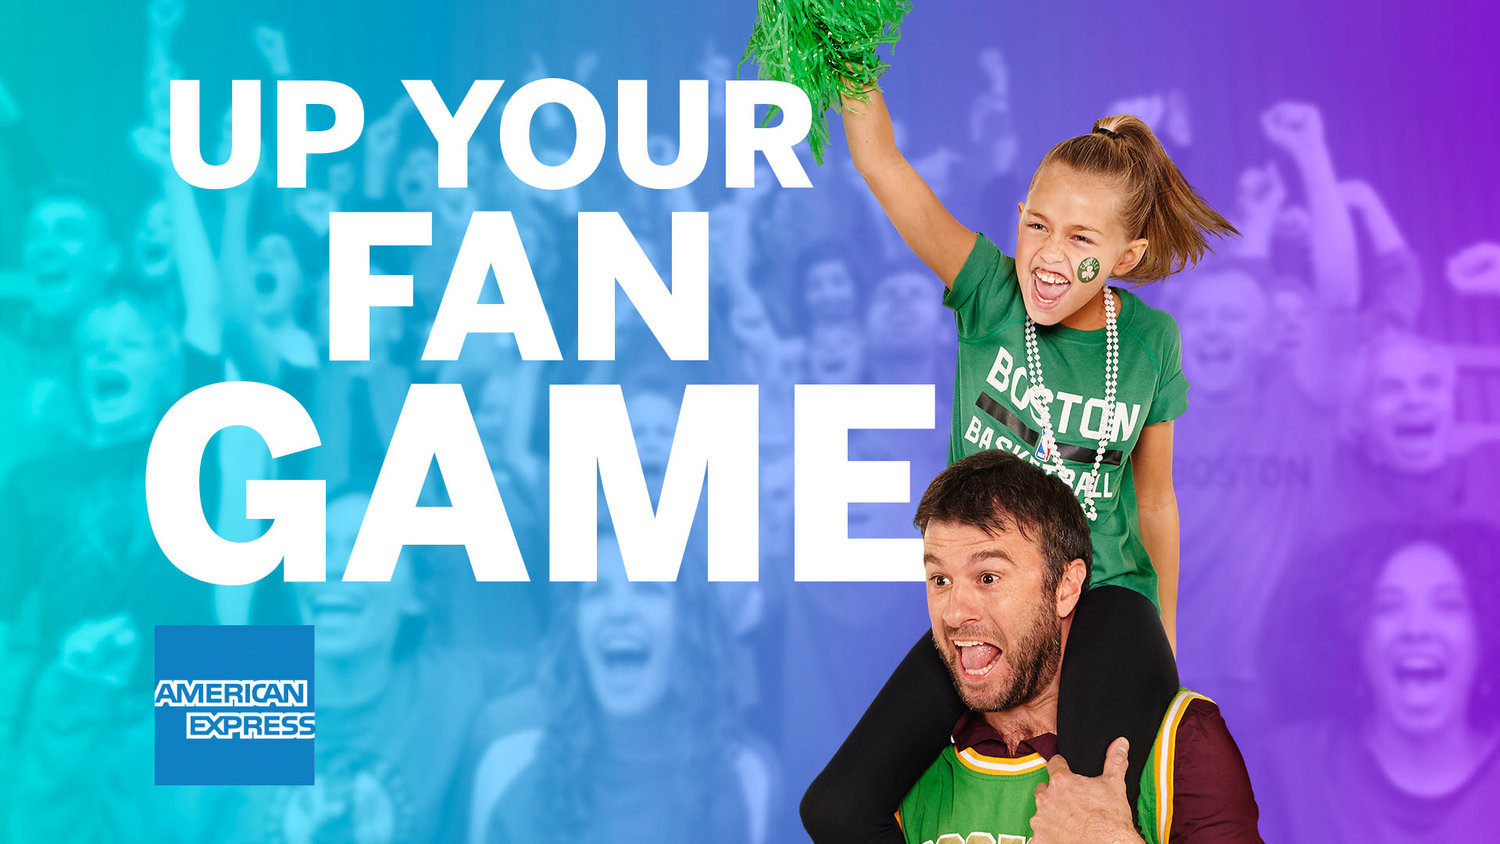 AMEX Up Your Fan Game Slide